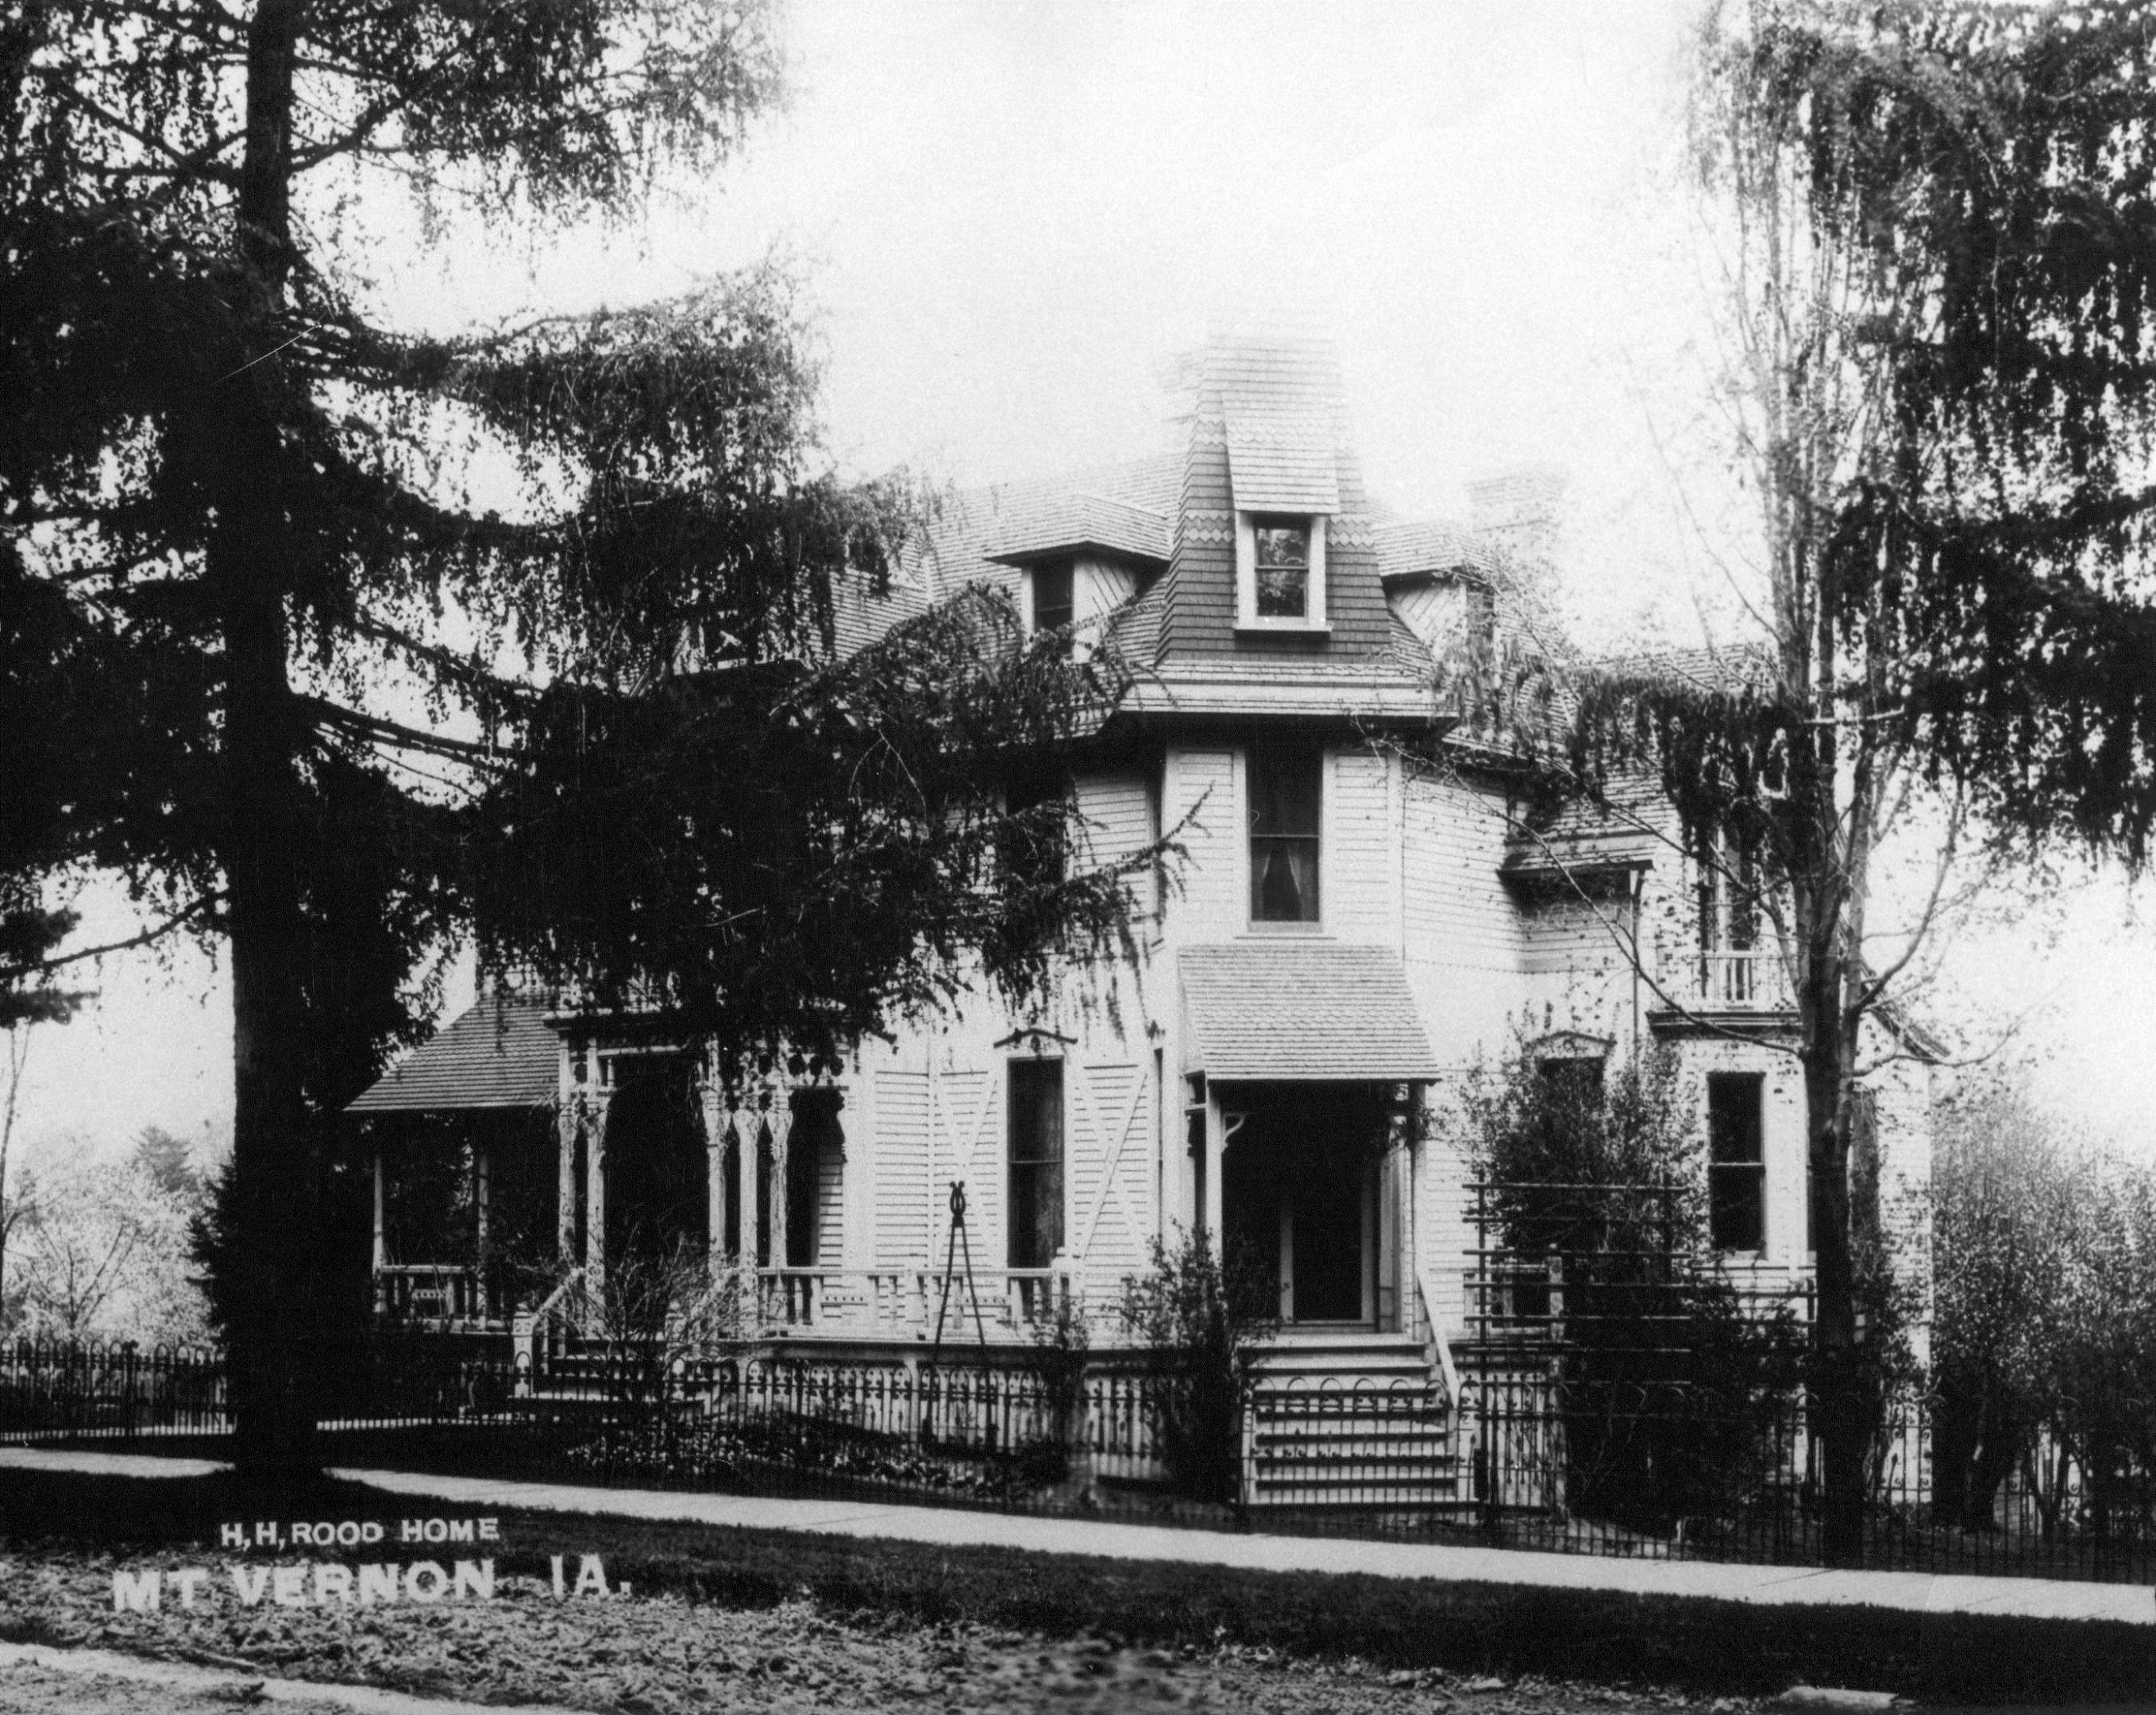 photo of H.H. Rood Home